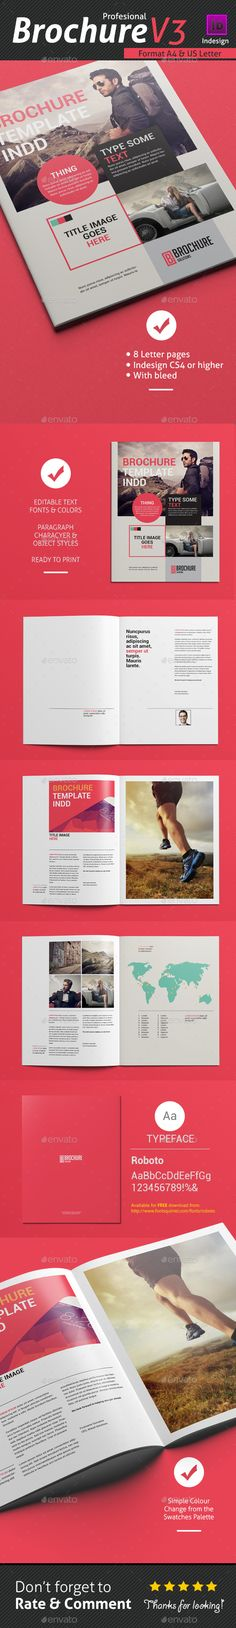 Free soft and clean square indesign brochure template for Indesign brochure templates free